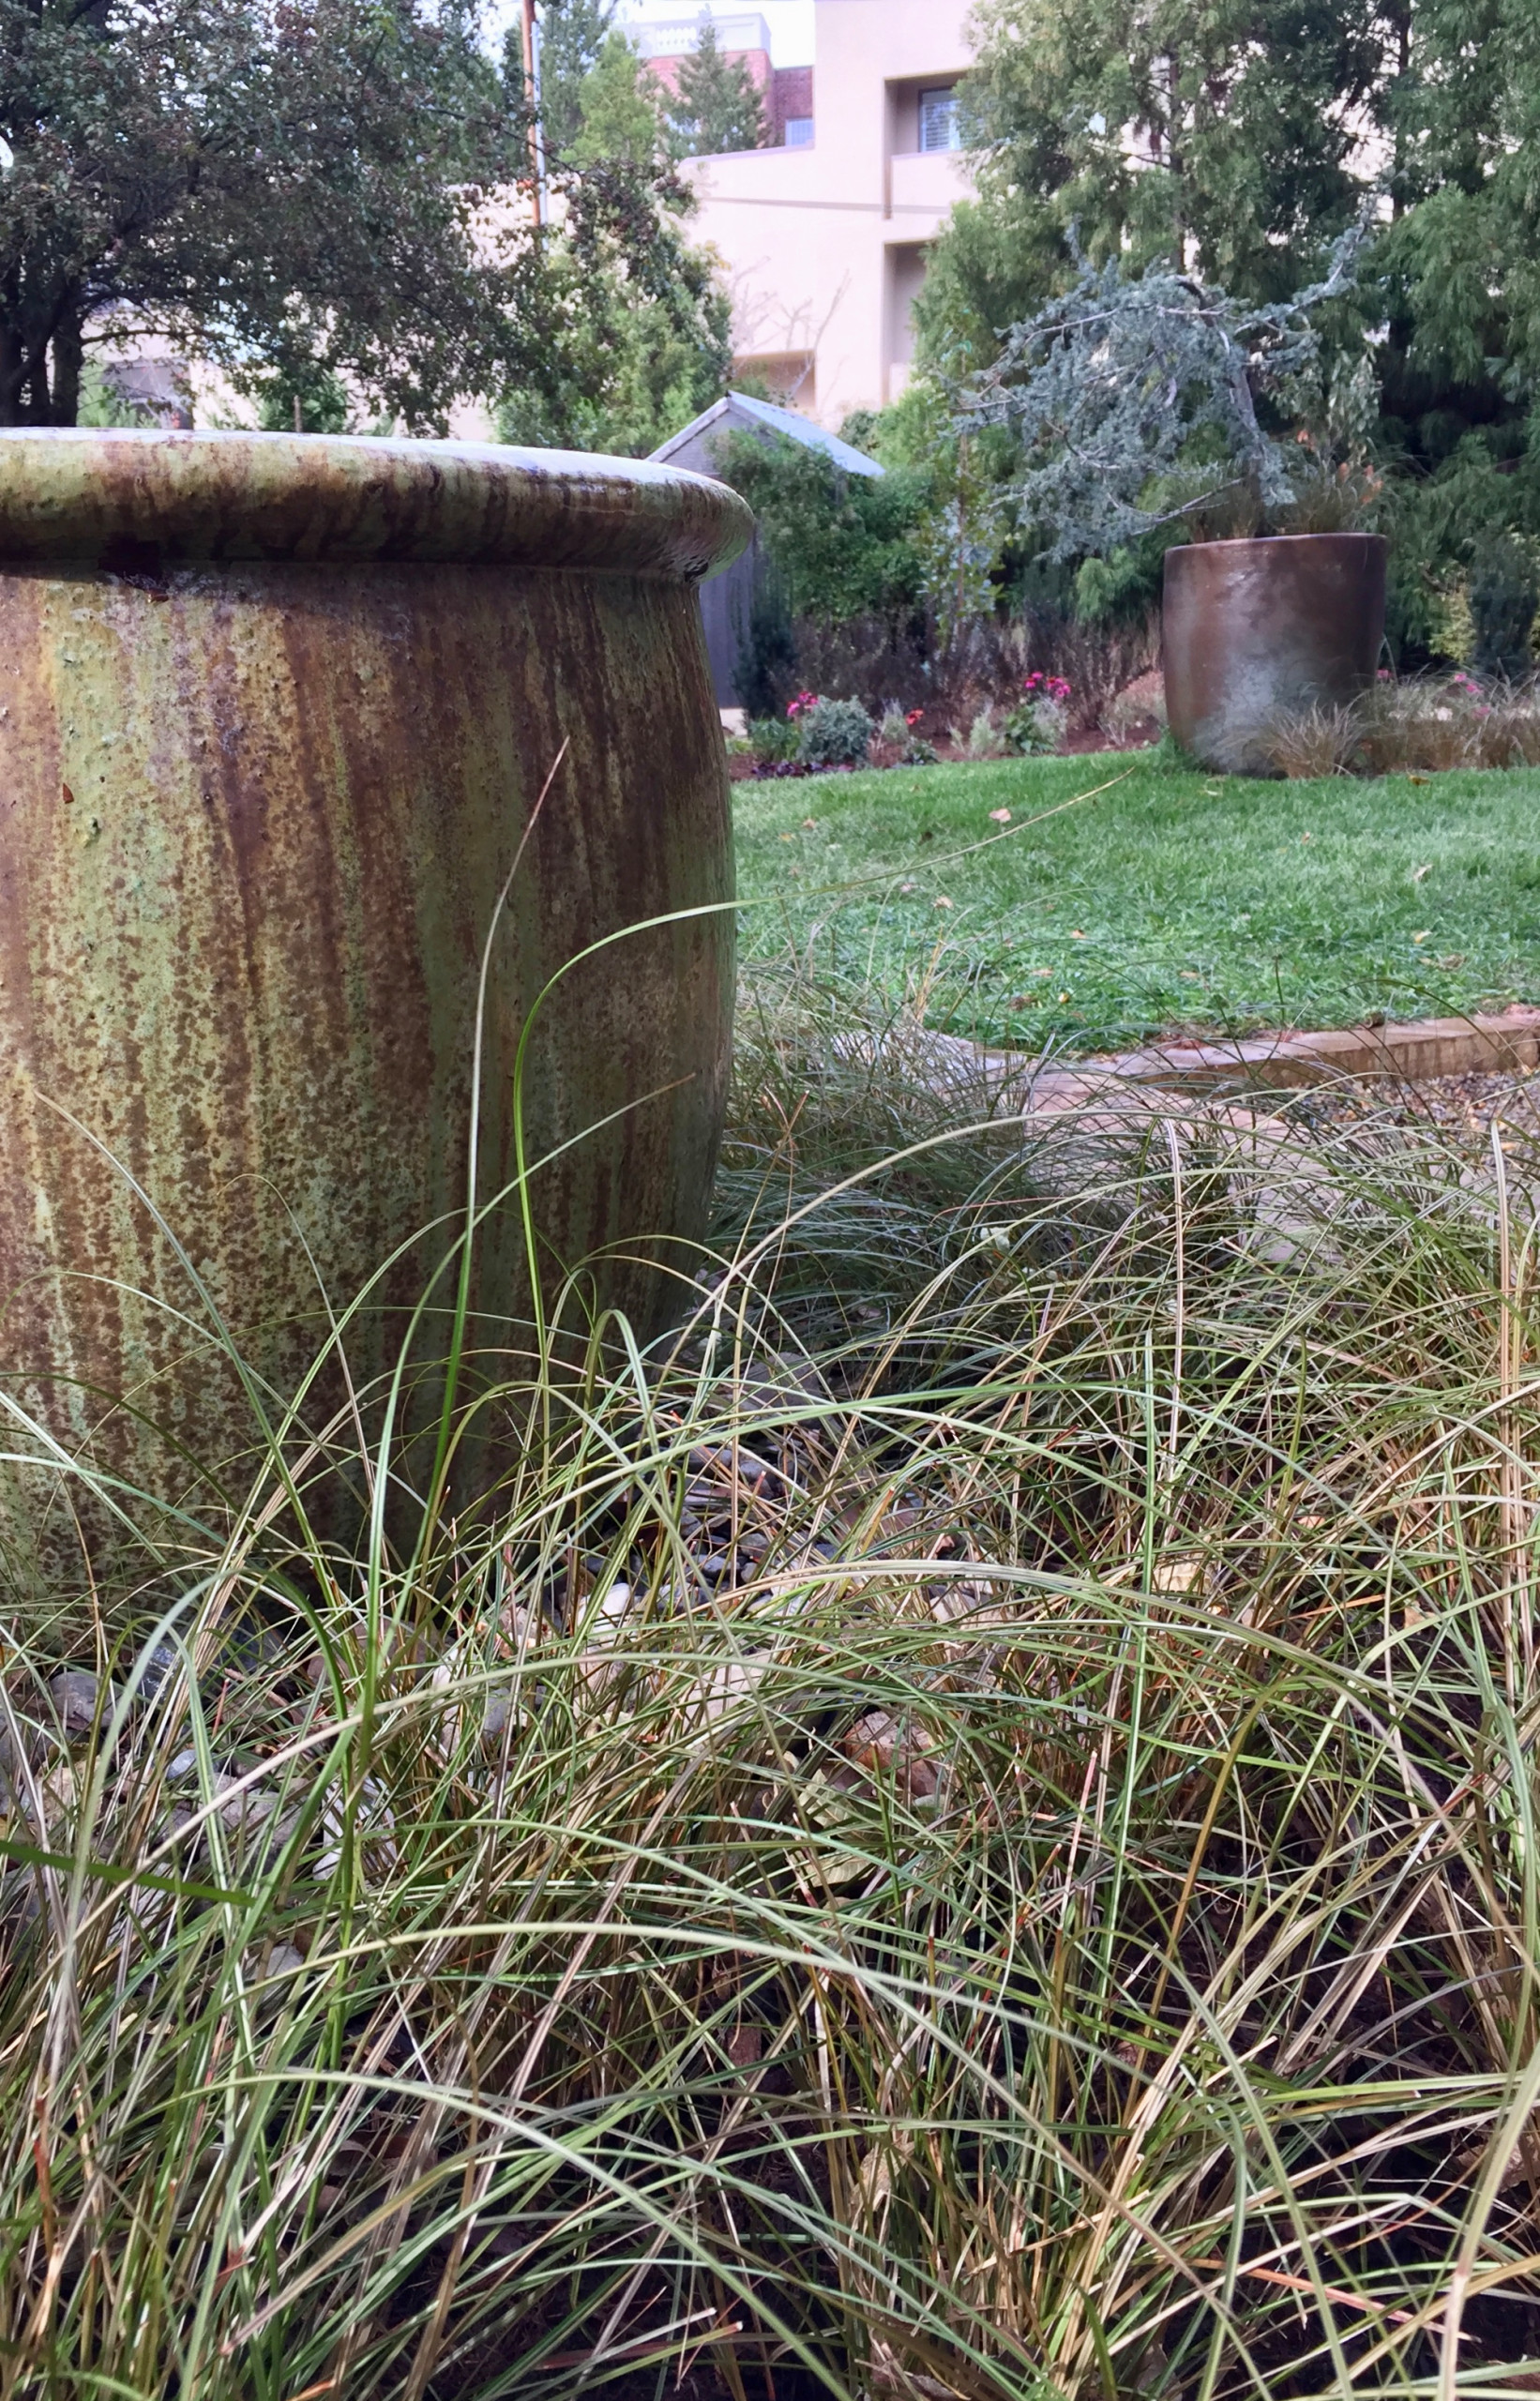 Ceramic water feature and carex